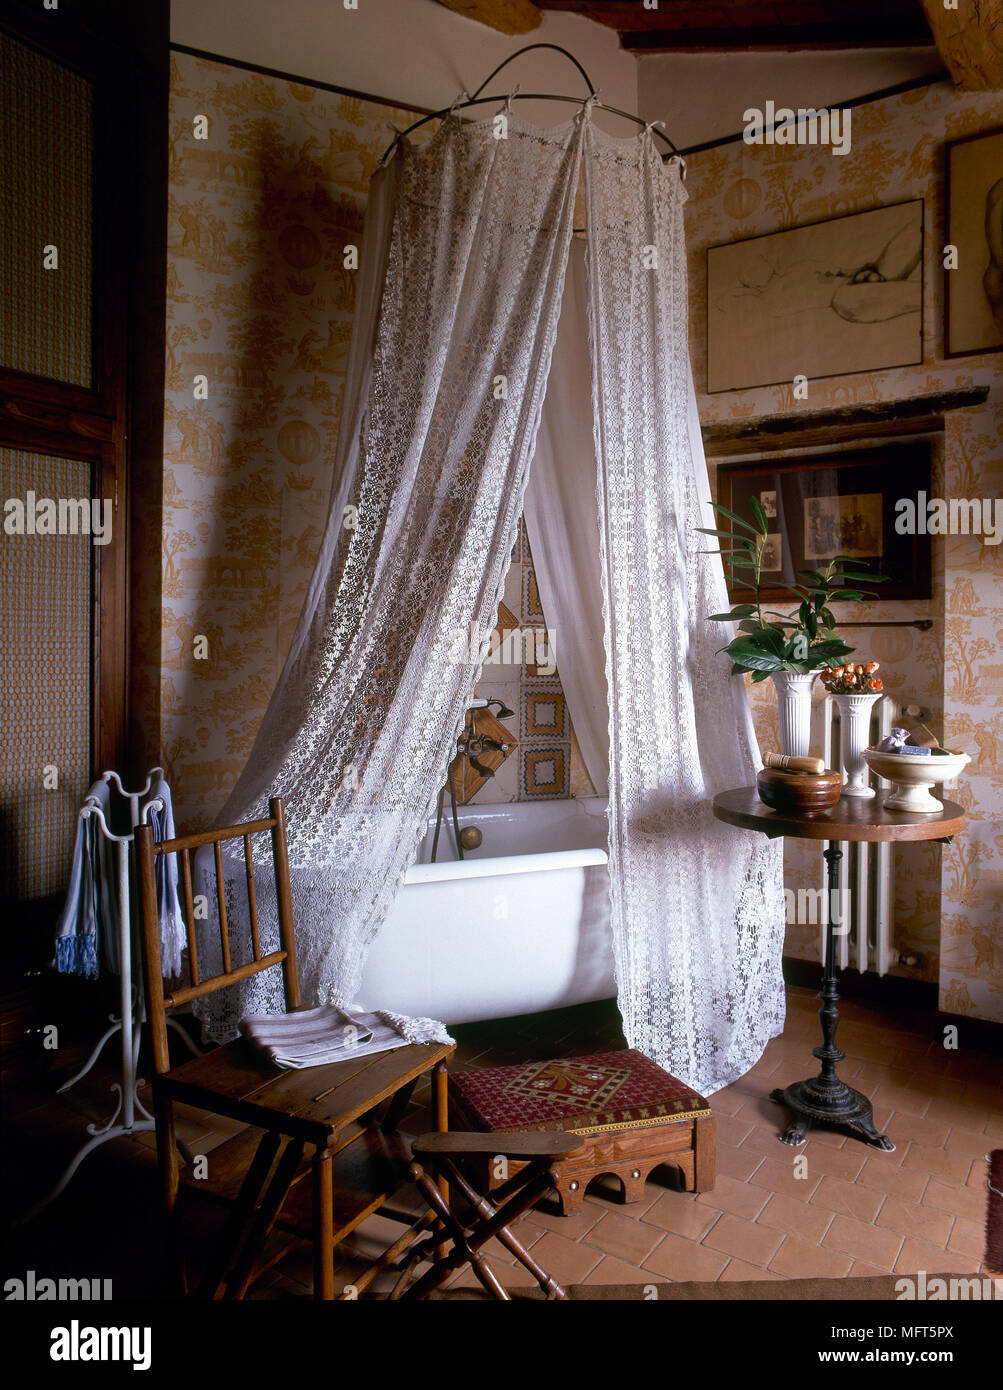 A Traditional Country Style Bathroom With Freestanding Roll Top Bath Shower Curtain Tiled Floor